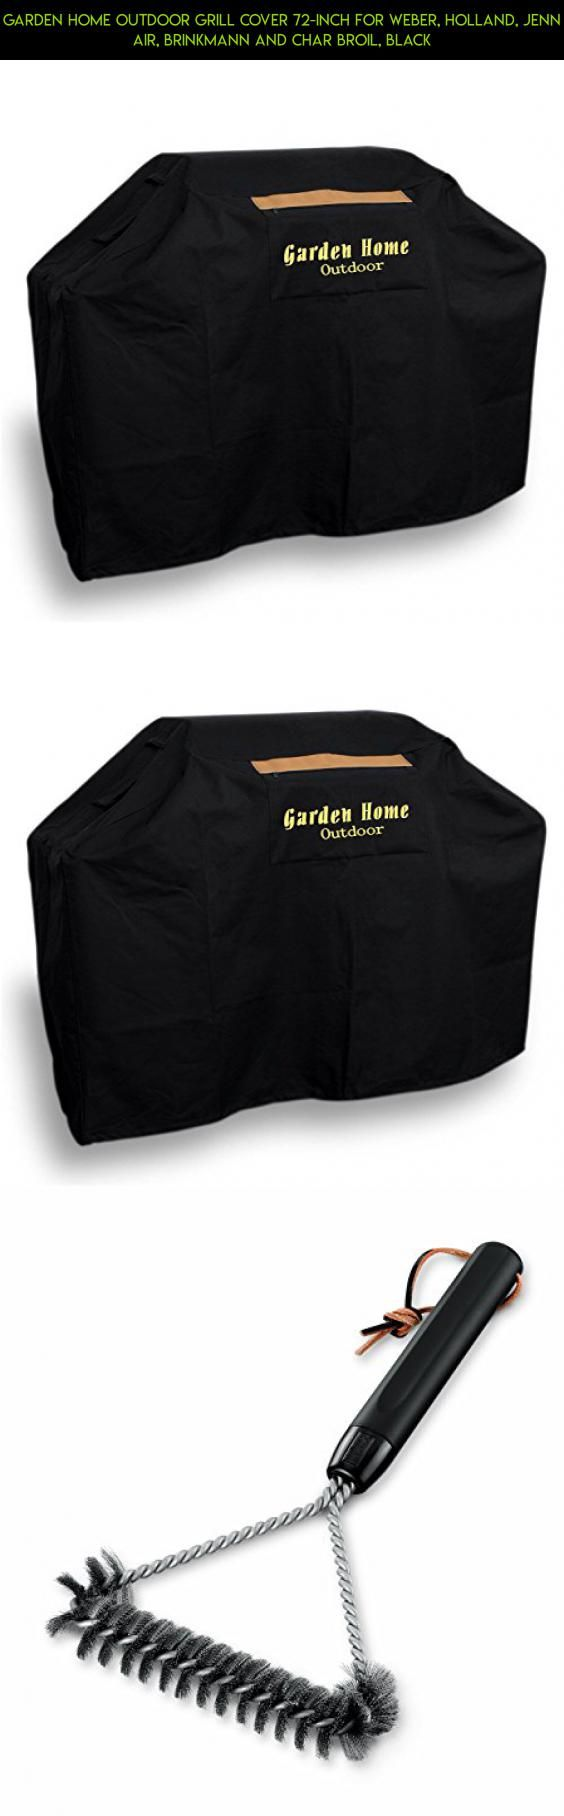 Garden Home Outdoor Grill Cover 72-Inch for Weber, Holland, Jenn Air, Brinkmann and Char Broil, Black #air #racing #gadgets #tech #kit #shopping #products #parts #fpv #plans #drone #camera #technology #grills #jenn